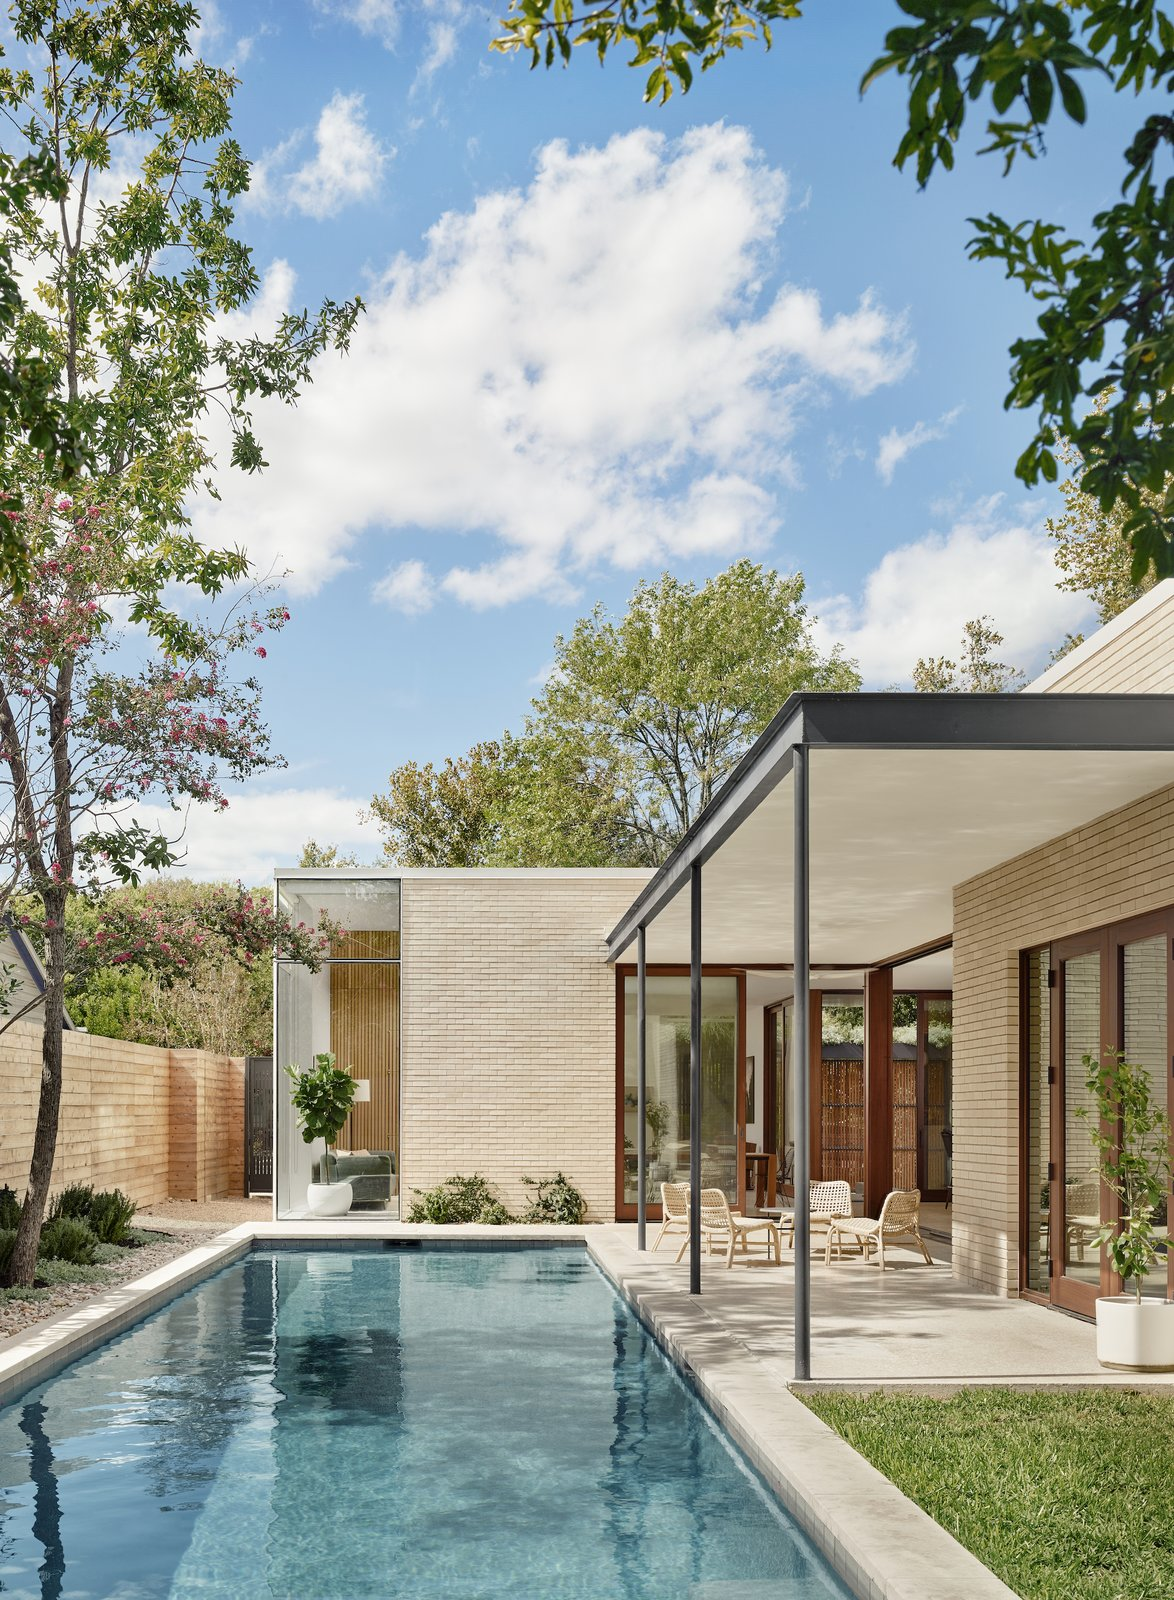 Pool patio of Hemlock Ave House by Chioco Design